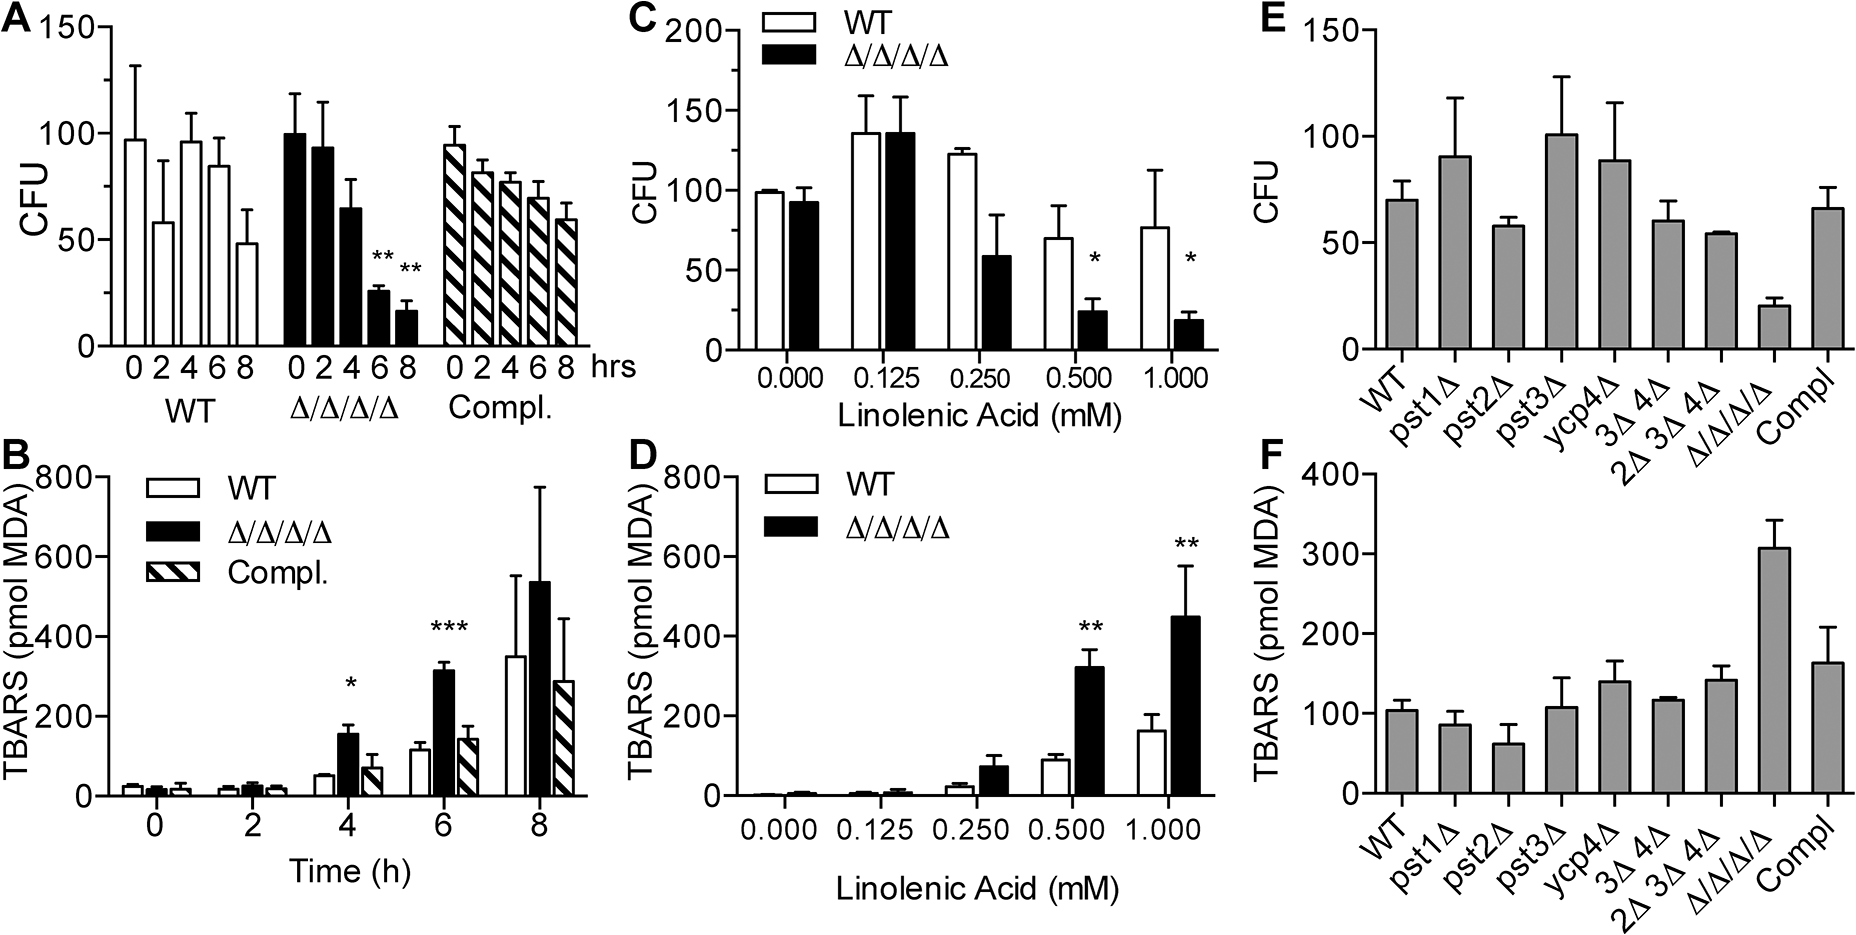 The Δ/Δ/Δ/Δ mutant strain is more sensitive to linolenic acid-induced cell death and lipid peroxidation.